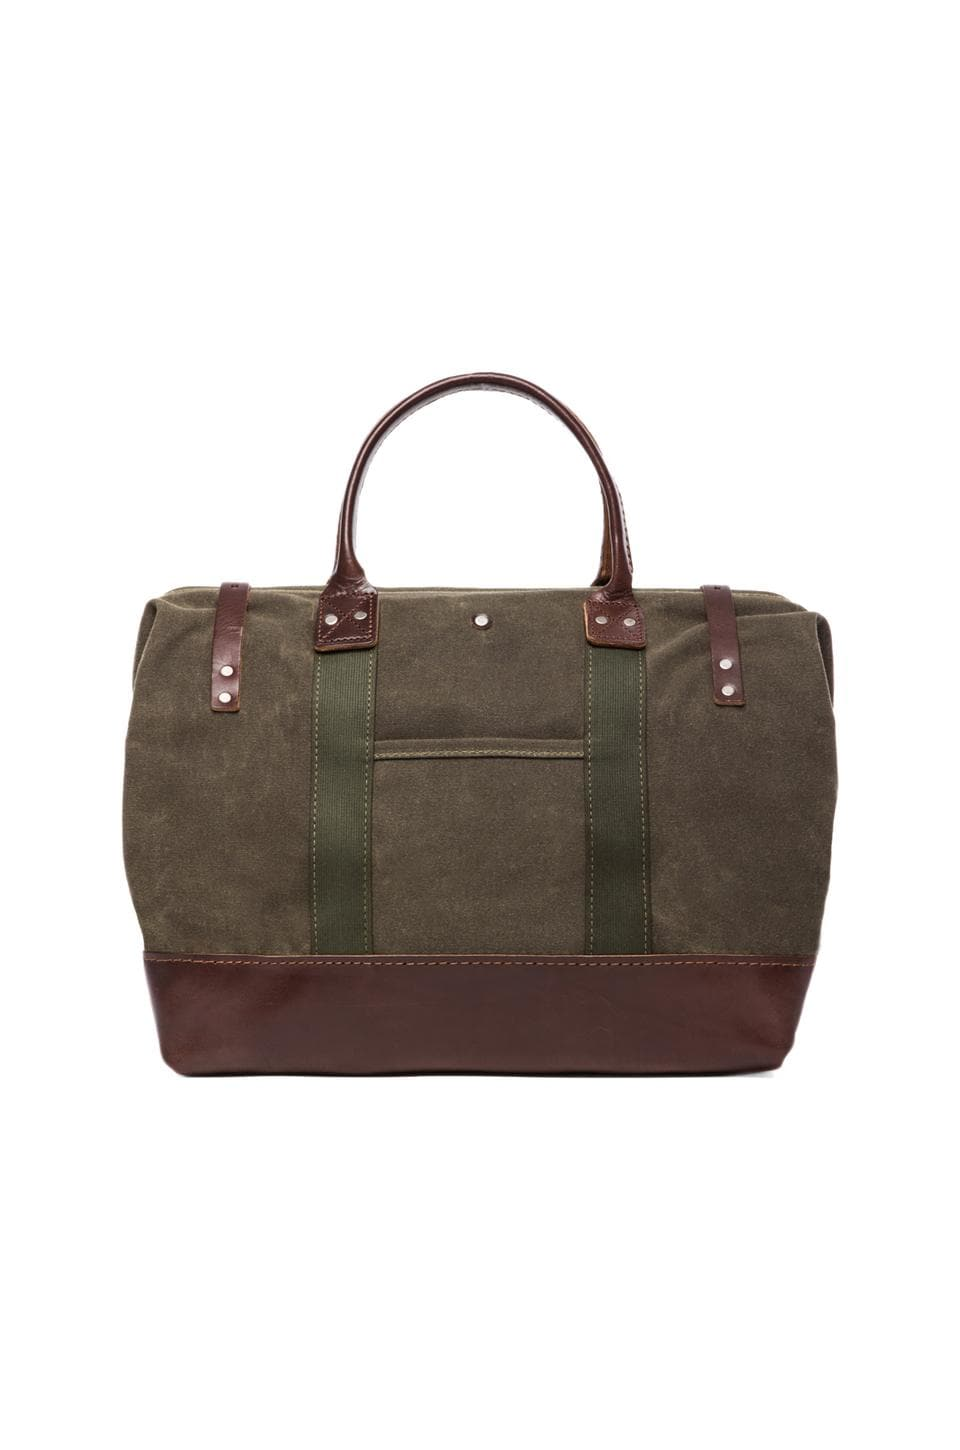 Billykirk No. 165 Medium Carryall in Olive Waxed & Brown